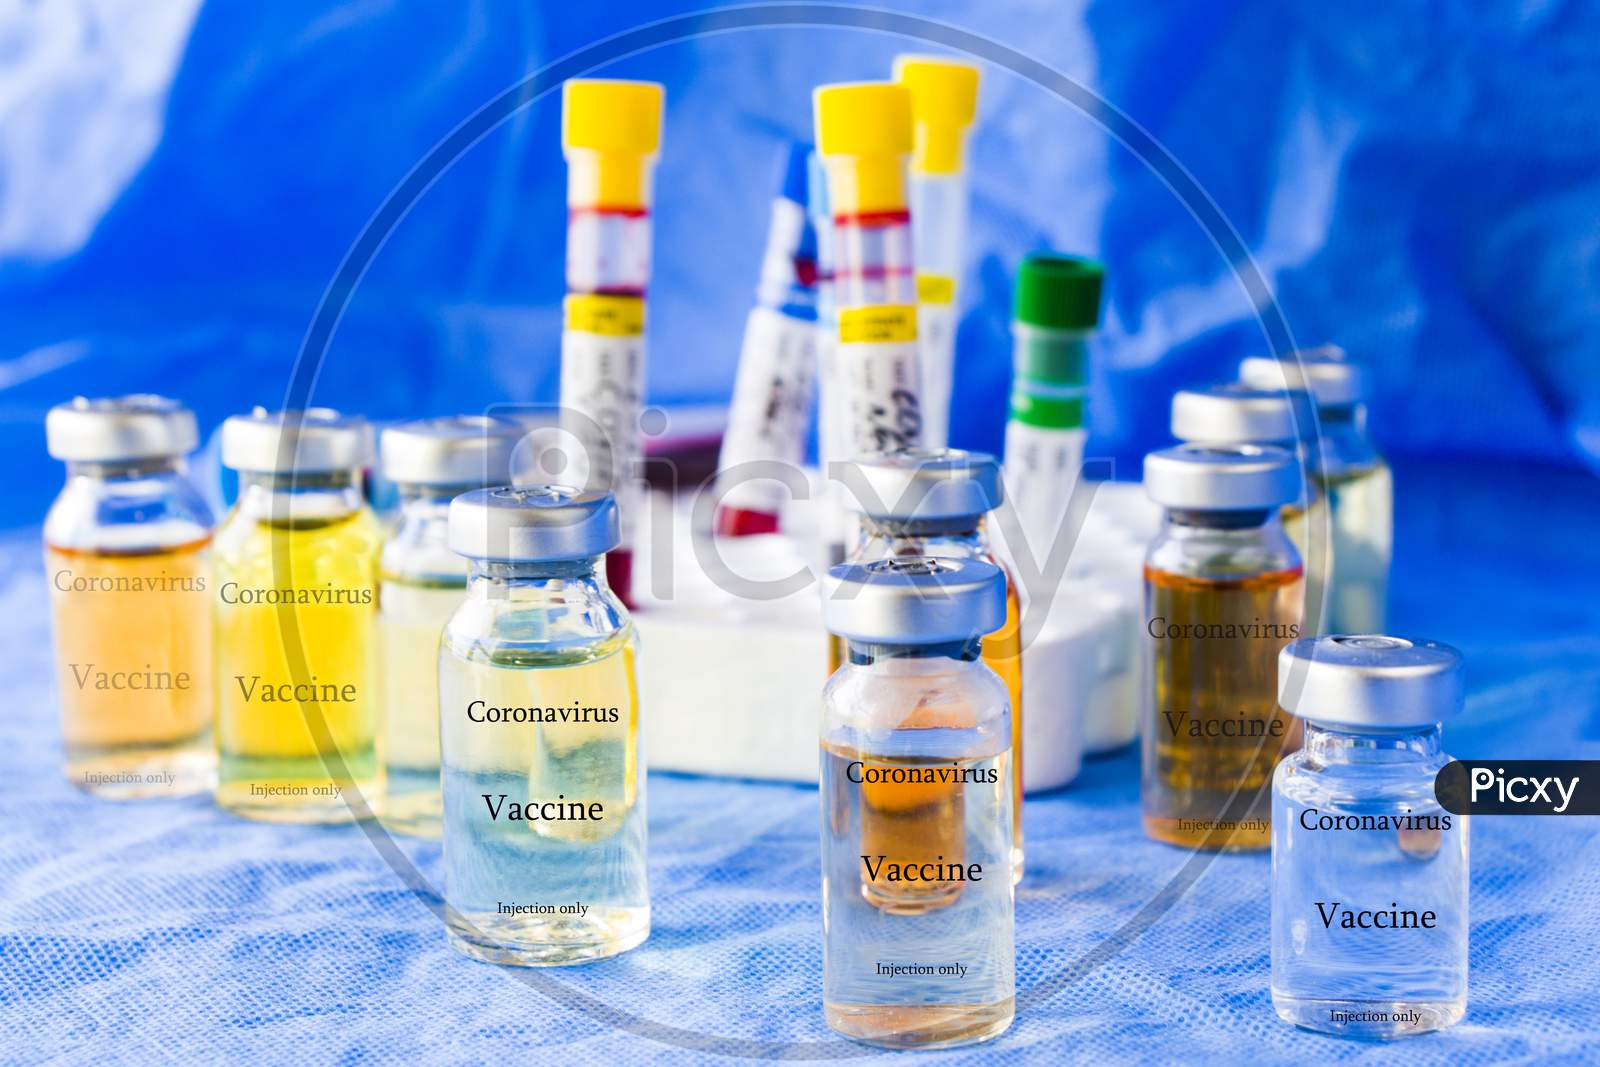 Corona Virus And Covid - 19 New Vaccine In Ampules And Blood Tube, Variations Of Vaccine